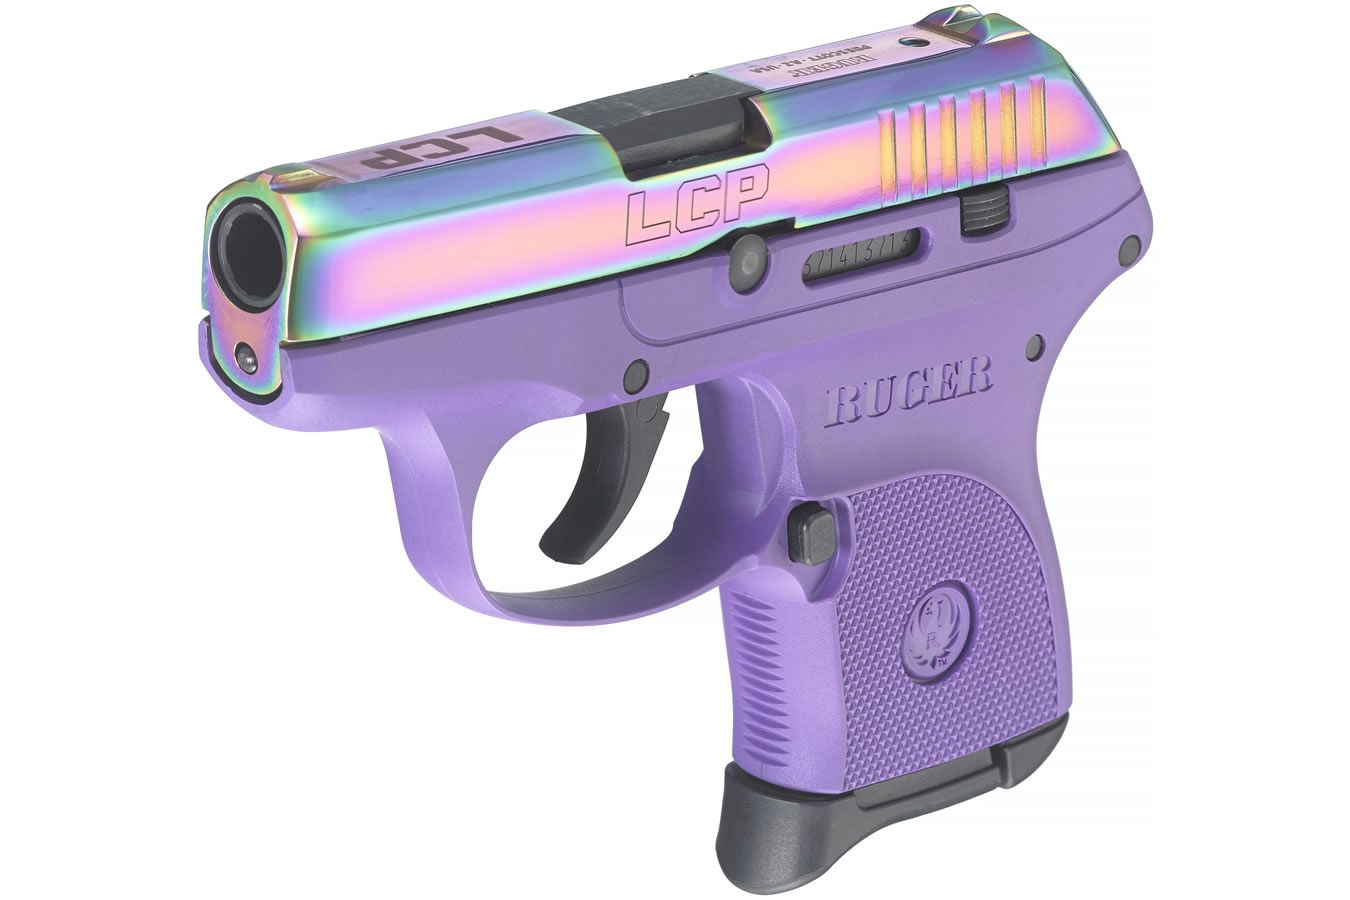 Ruger LCP 380 ACP with Purple Color Cased Slide | Sportsman's